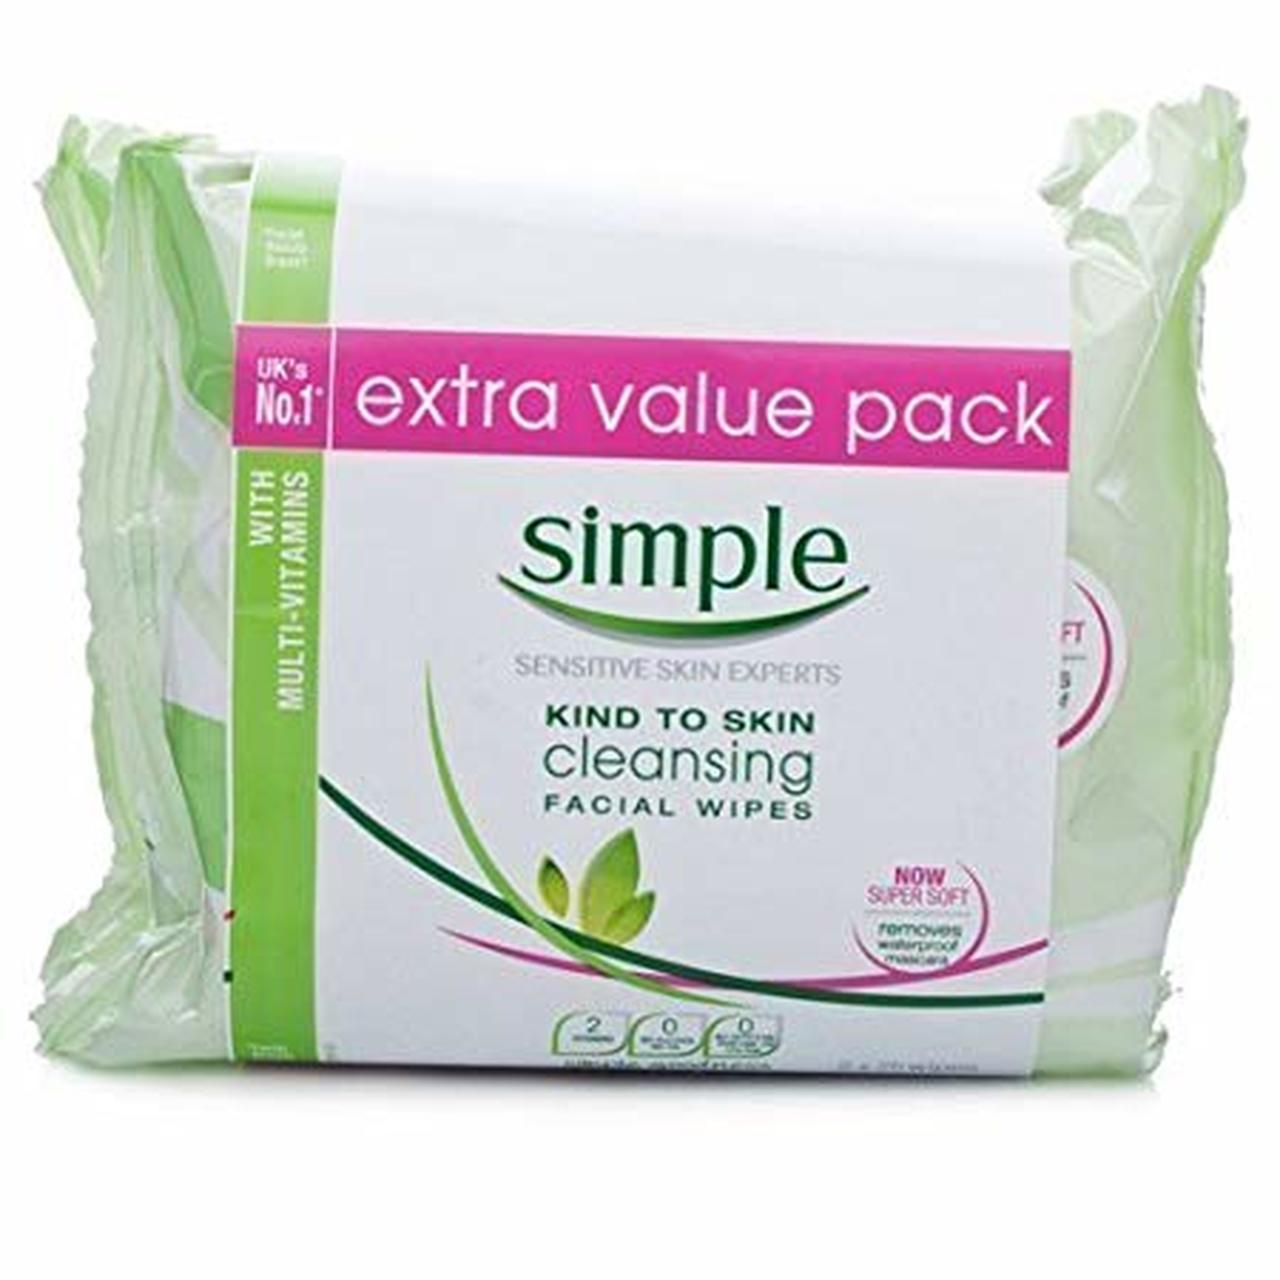 SIMPLE CLEANSING WIPES 2 PACK (50's)